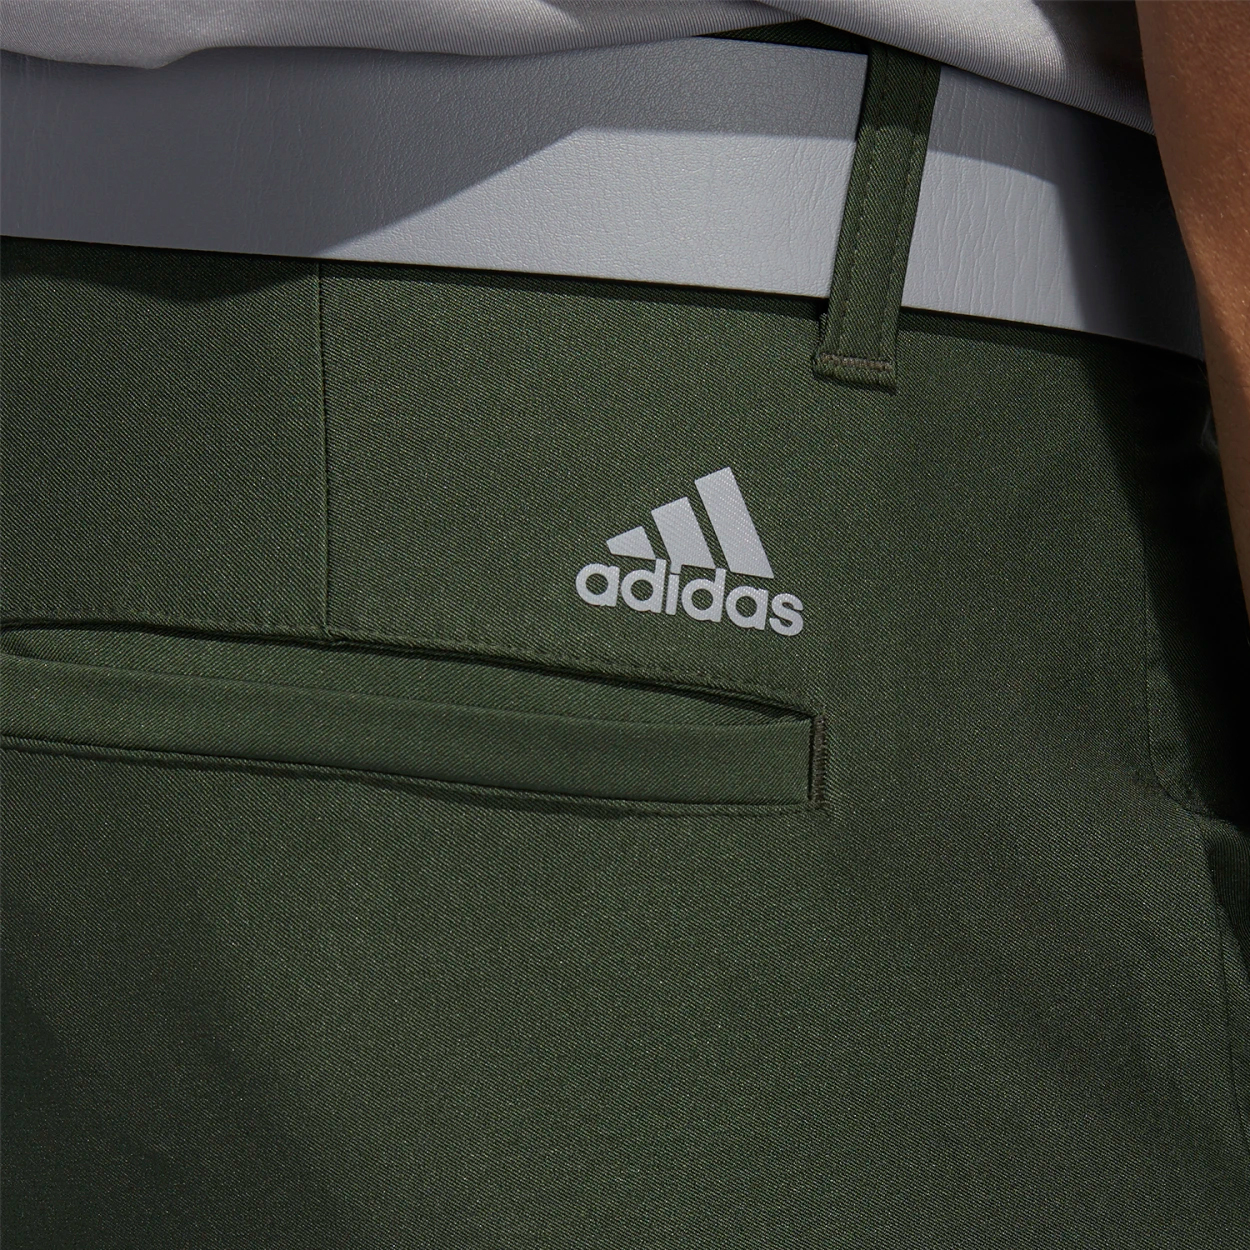 Adidas-Golf-Men-039-s-Ultimate-365-Classic-Pants-Brand-New thumbnail 8